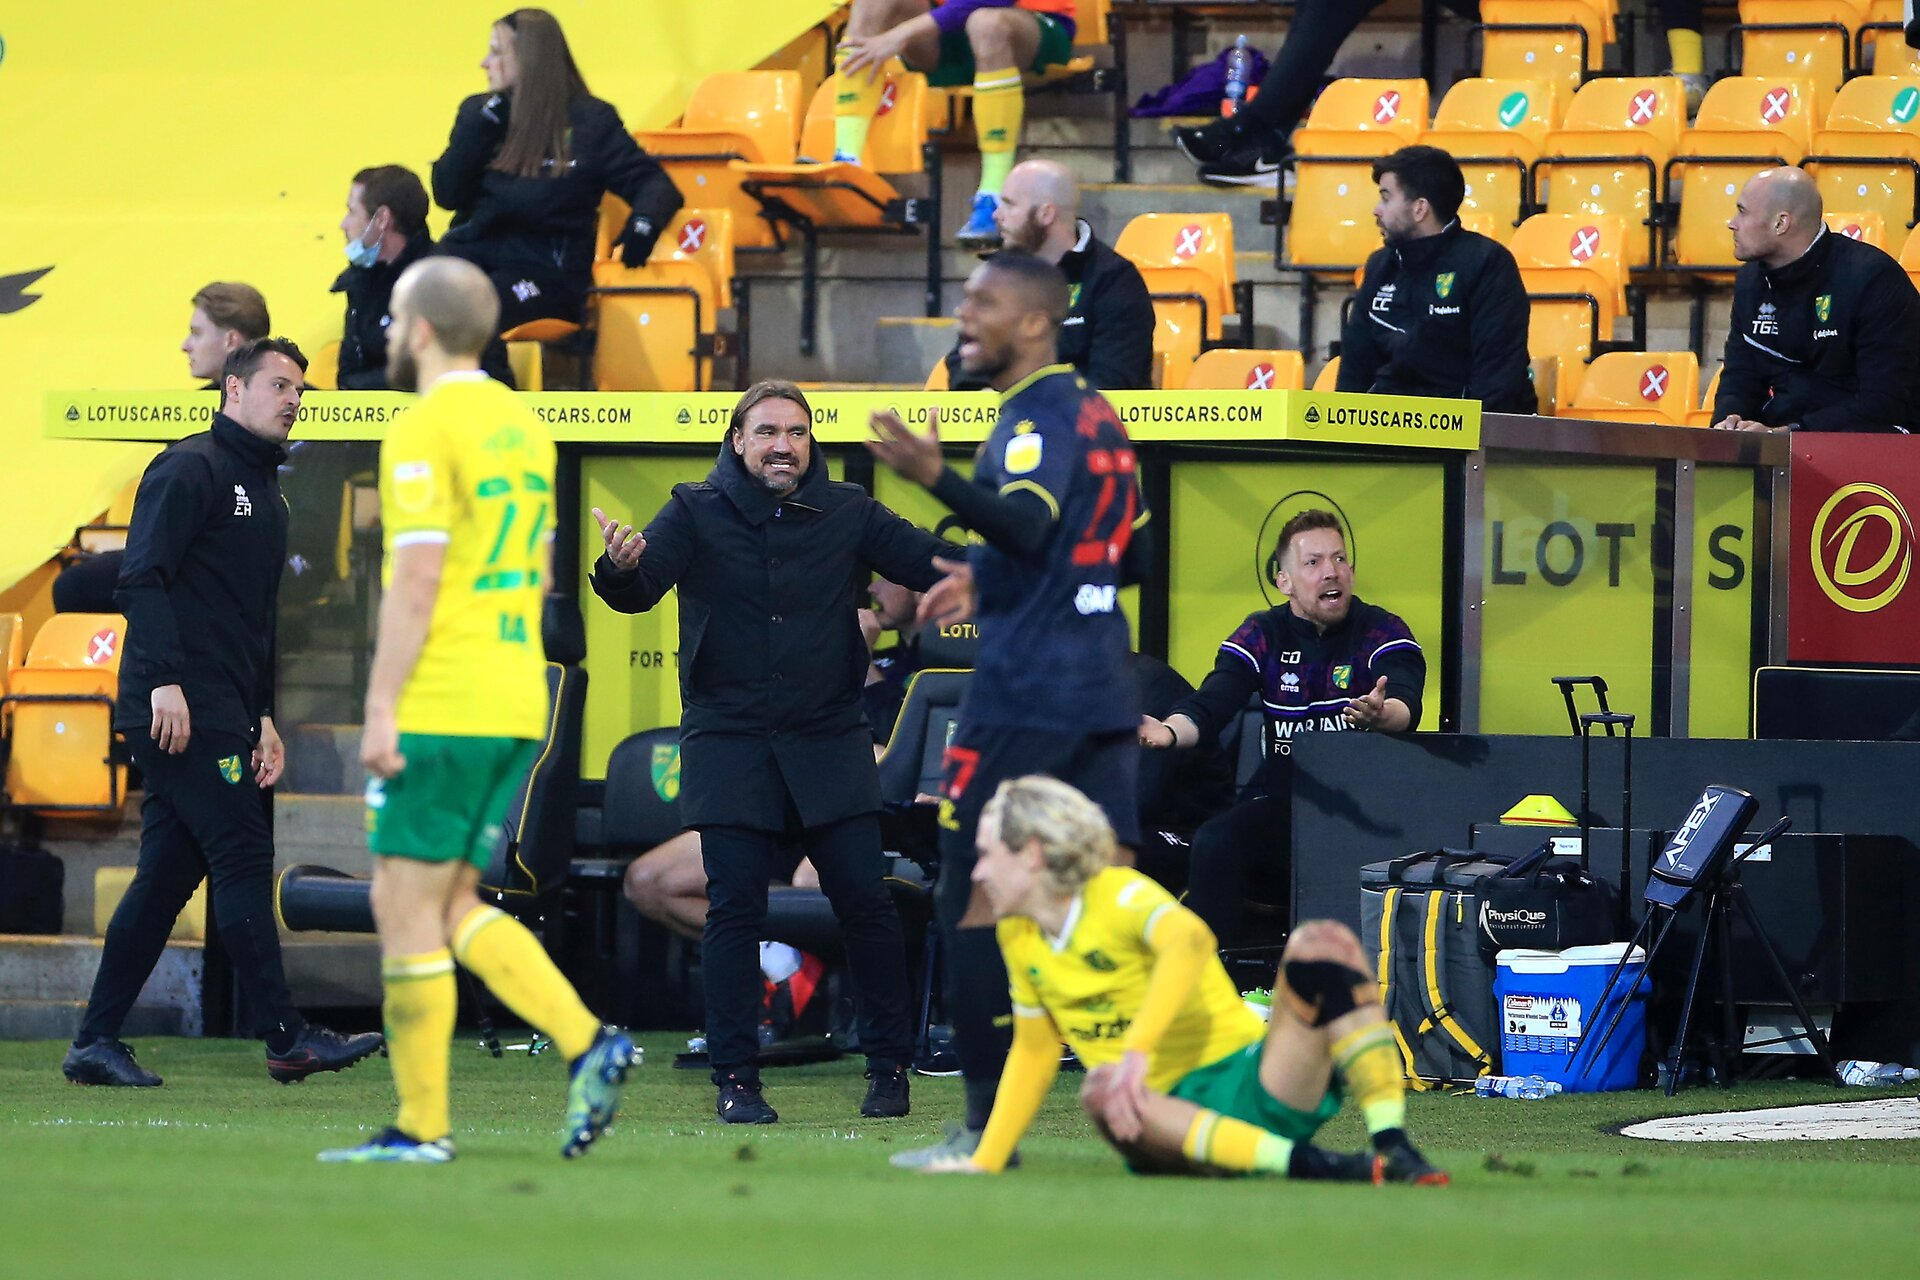 NORWICH, ENGLAND - APRIL 20: Norwich City Manager Daniel Farke during the Sky Bet Championship match between Norwich City and Watford at Carrow Road on April 20, 2021 in Norwich, England. Sporting stadiums around the UK remain under strict restrictions due to the Coronavirus Pandemic as Government social distancing laws prohibit fans inside venues resulting in games being played behind closed doors. (Photo by Stephen Pond/Getty Images)